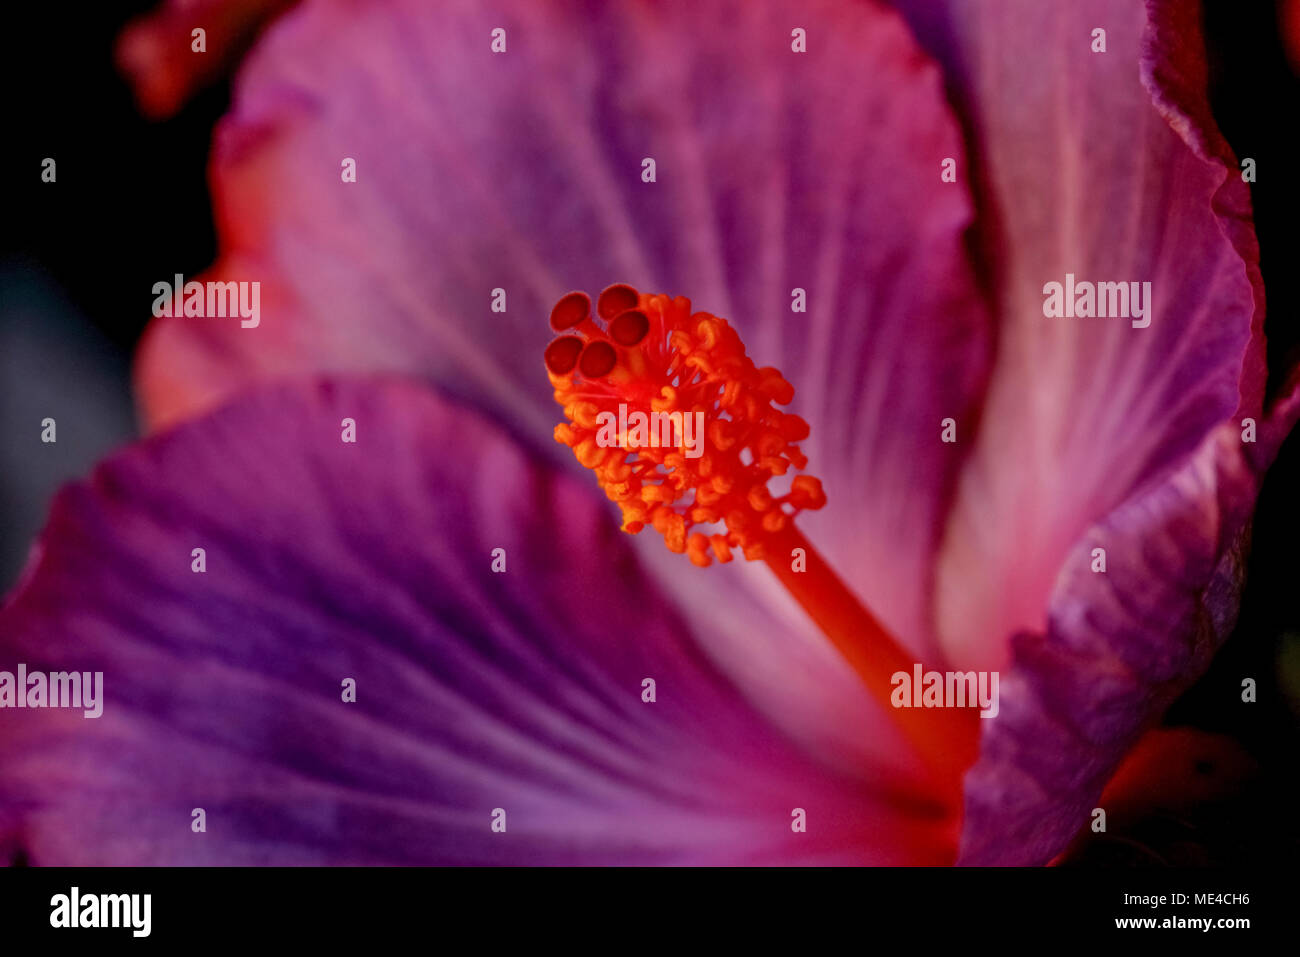 Closeup of the pistil of a perfect purple Hibiscus flower - Stock Image